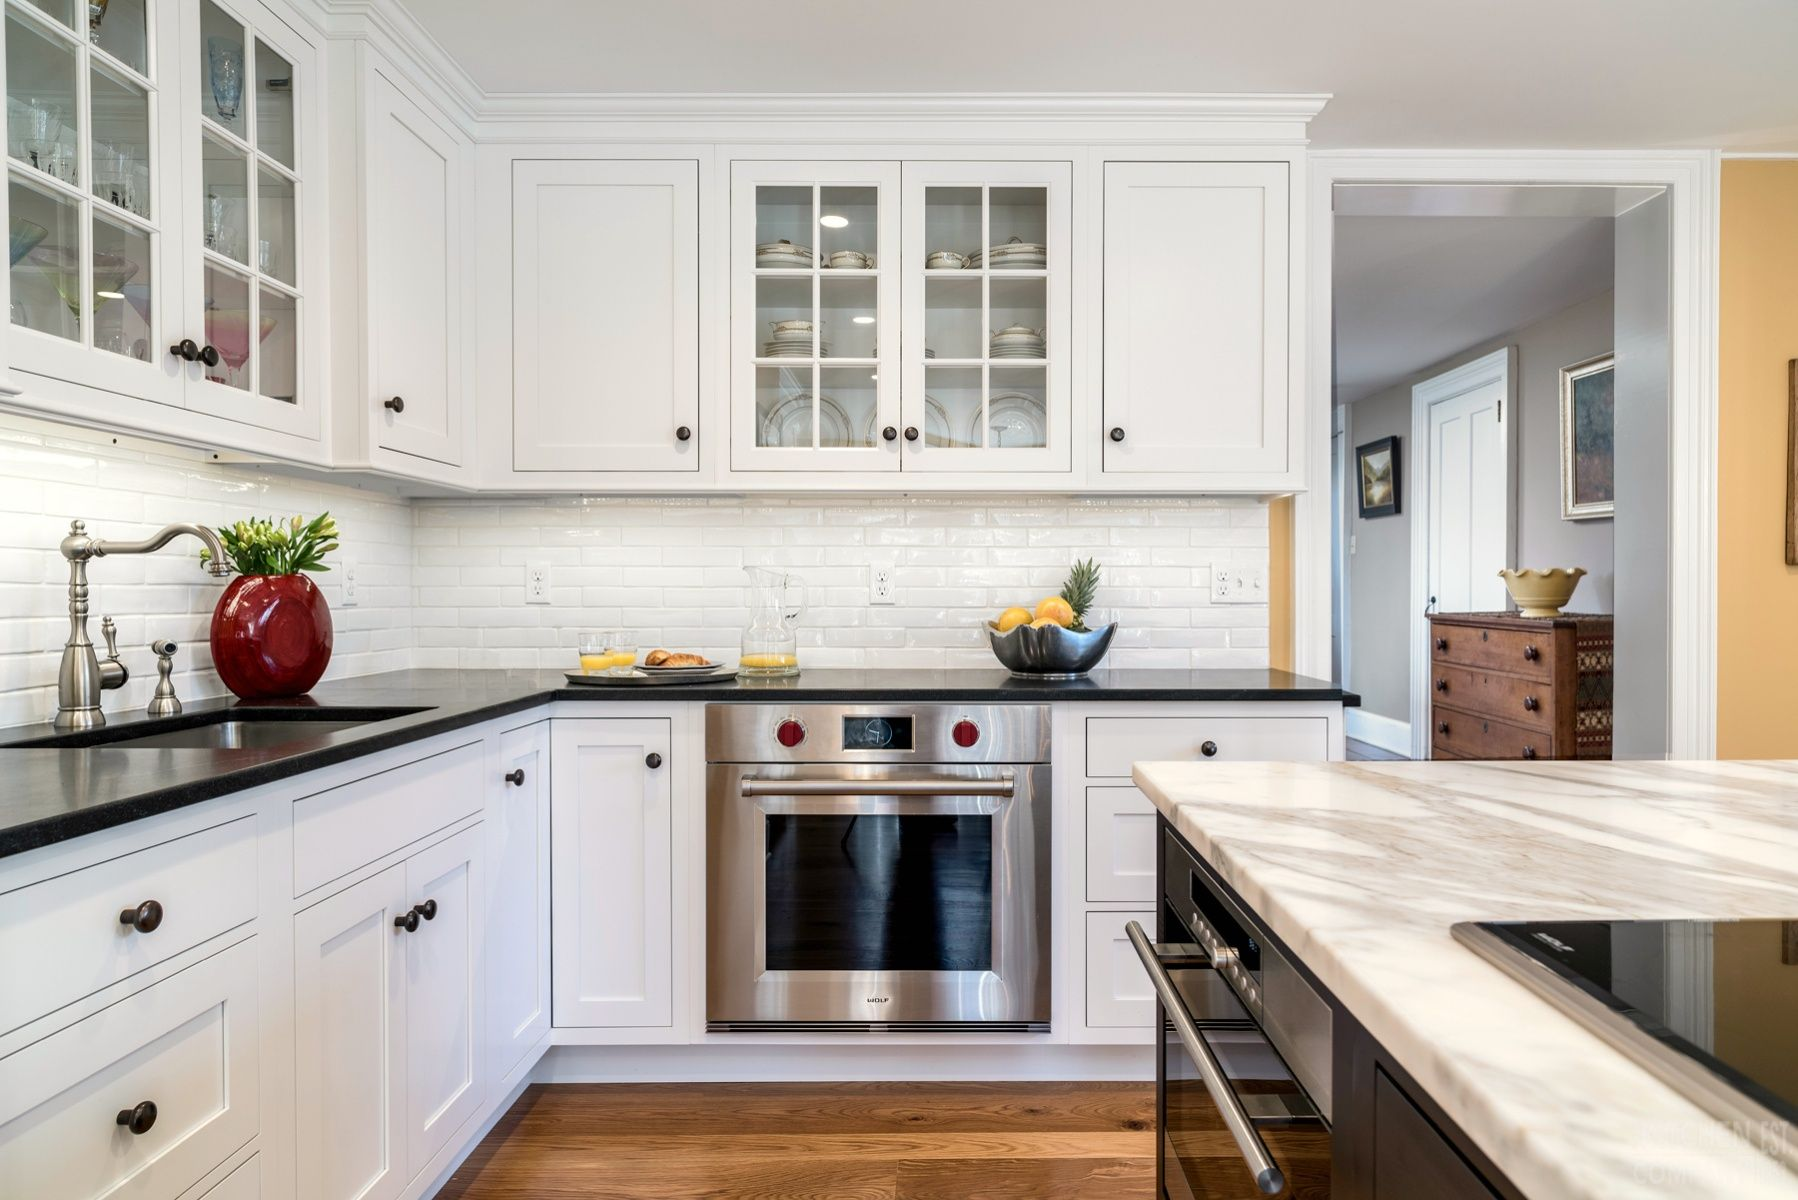 Traditional Farmhouse Kitchen in Madison, CT   Kitchen Photo Gallery ...